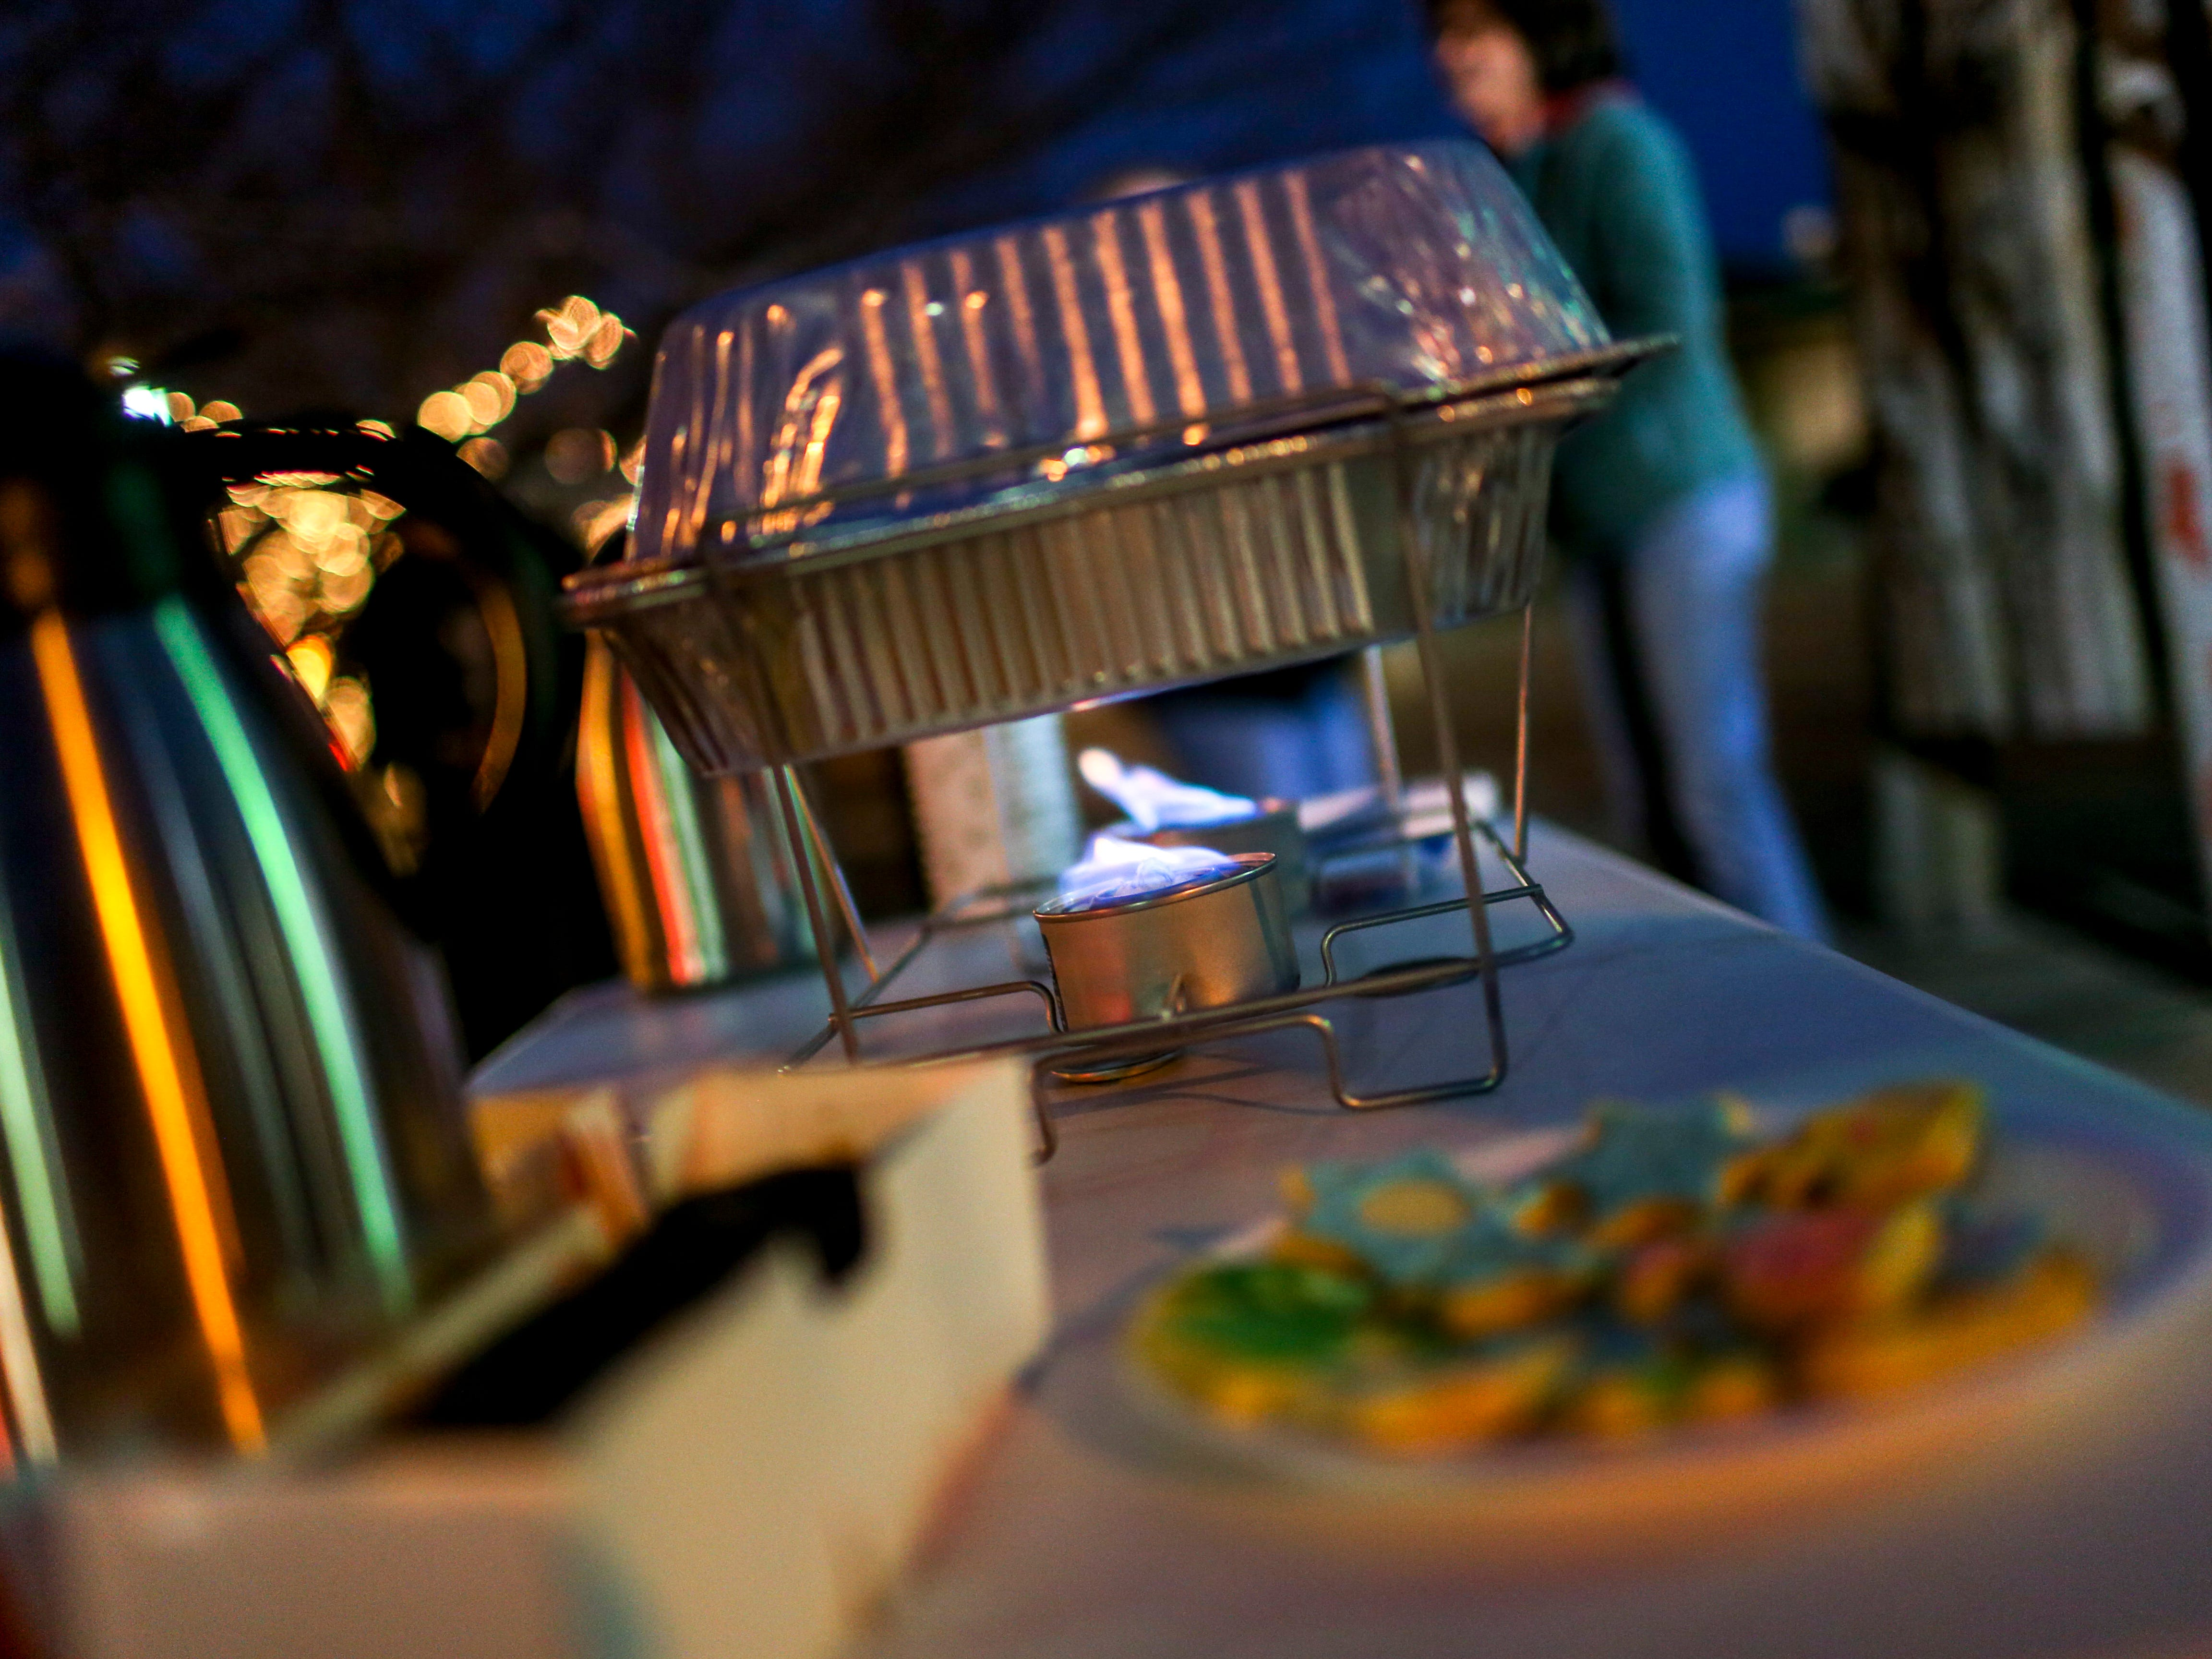 A table providing traditional Jewish snacks and hot cider was presented by Rabbi Yankel Ginsburg during the first public Hanukkah Menorah Lighting at Anderson Park in Jackson, Tenn., on Thursday, Dec. 6, 2018.